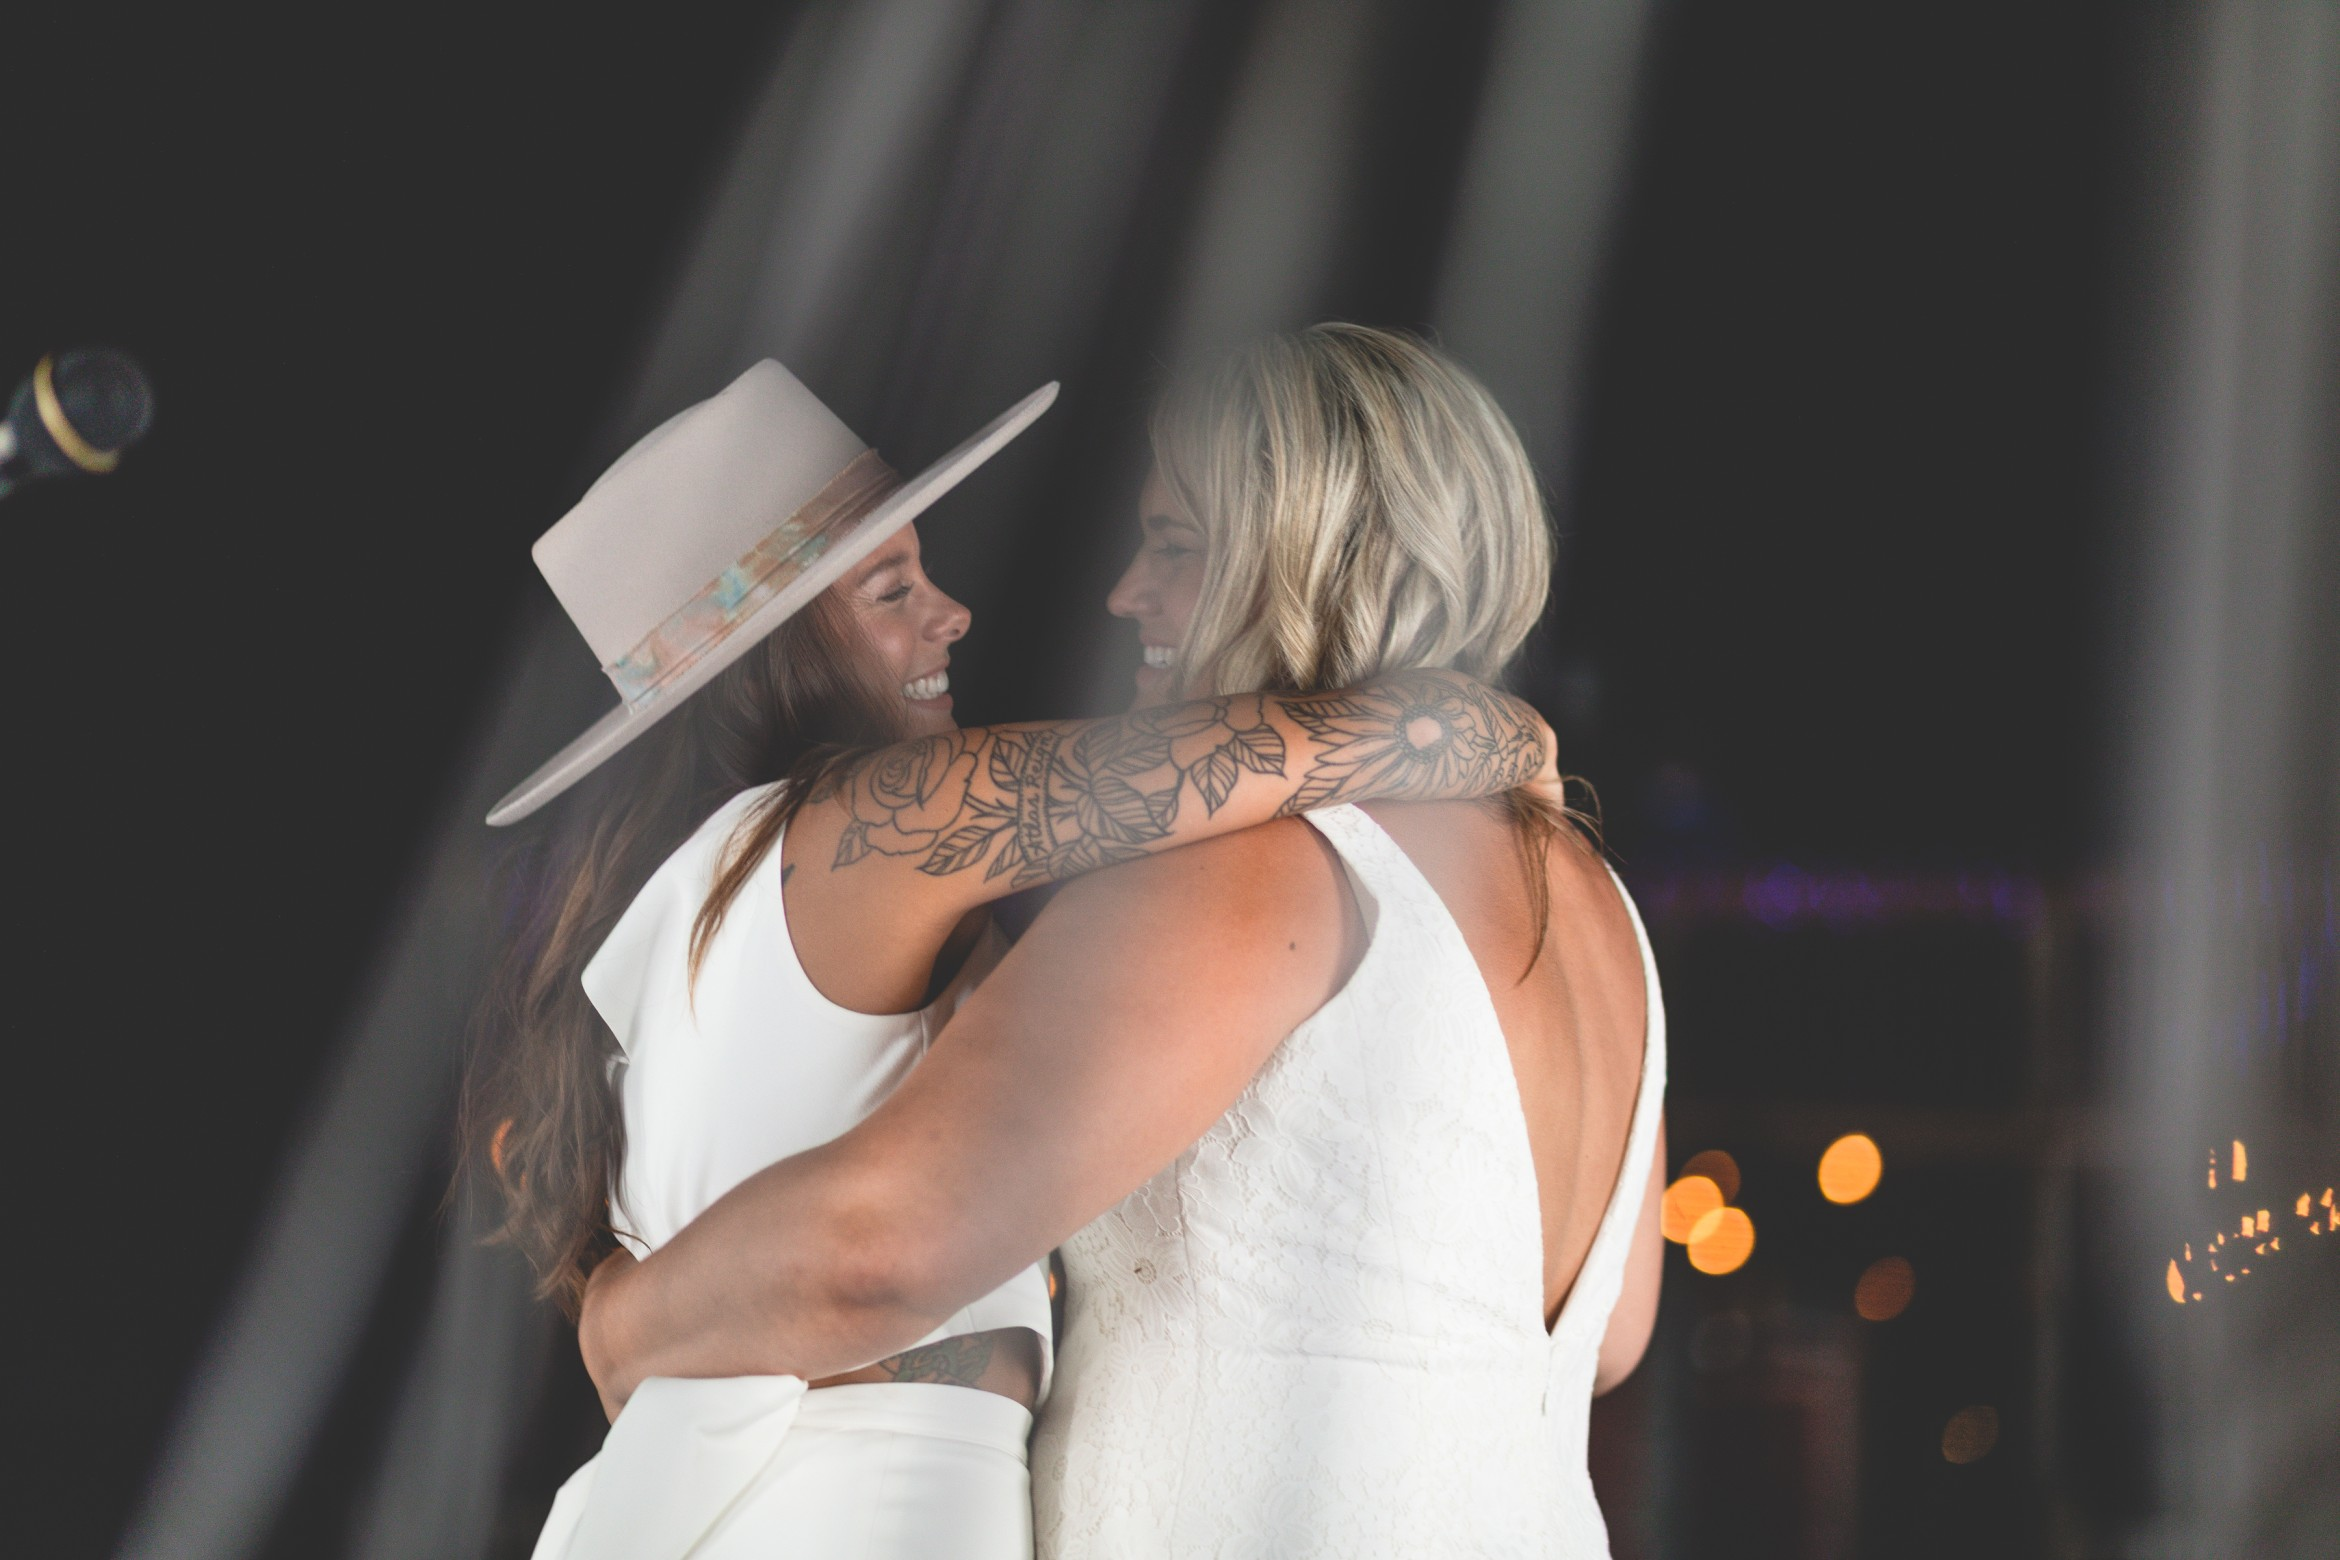 Pandemic Wedding- LGBT Wedding- Texas Wedding- Greg Fulks Photography- Pop up wedding